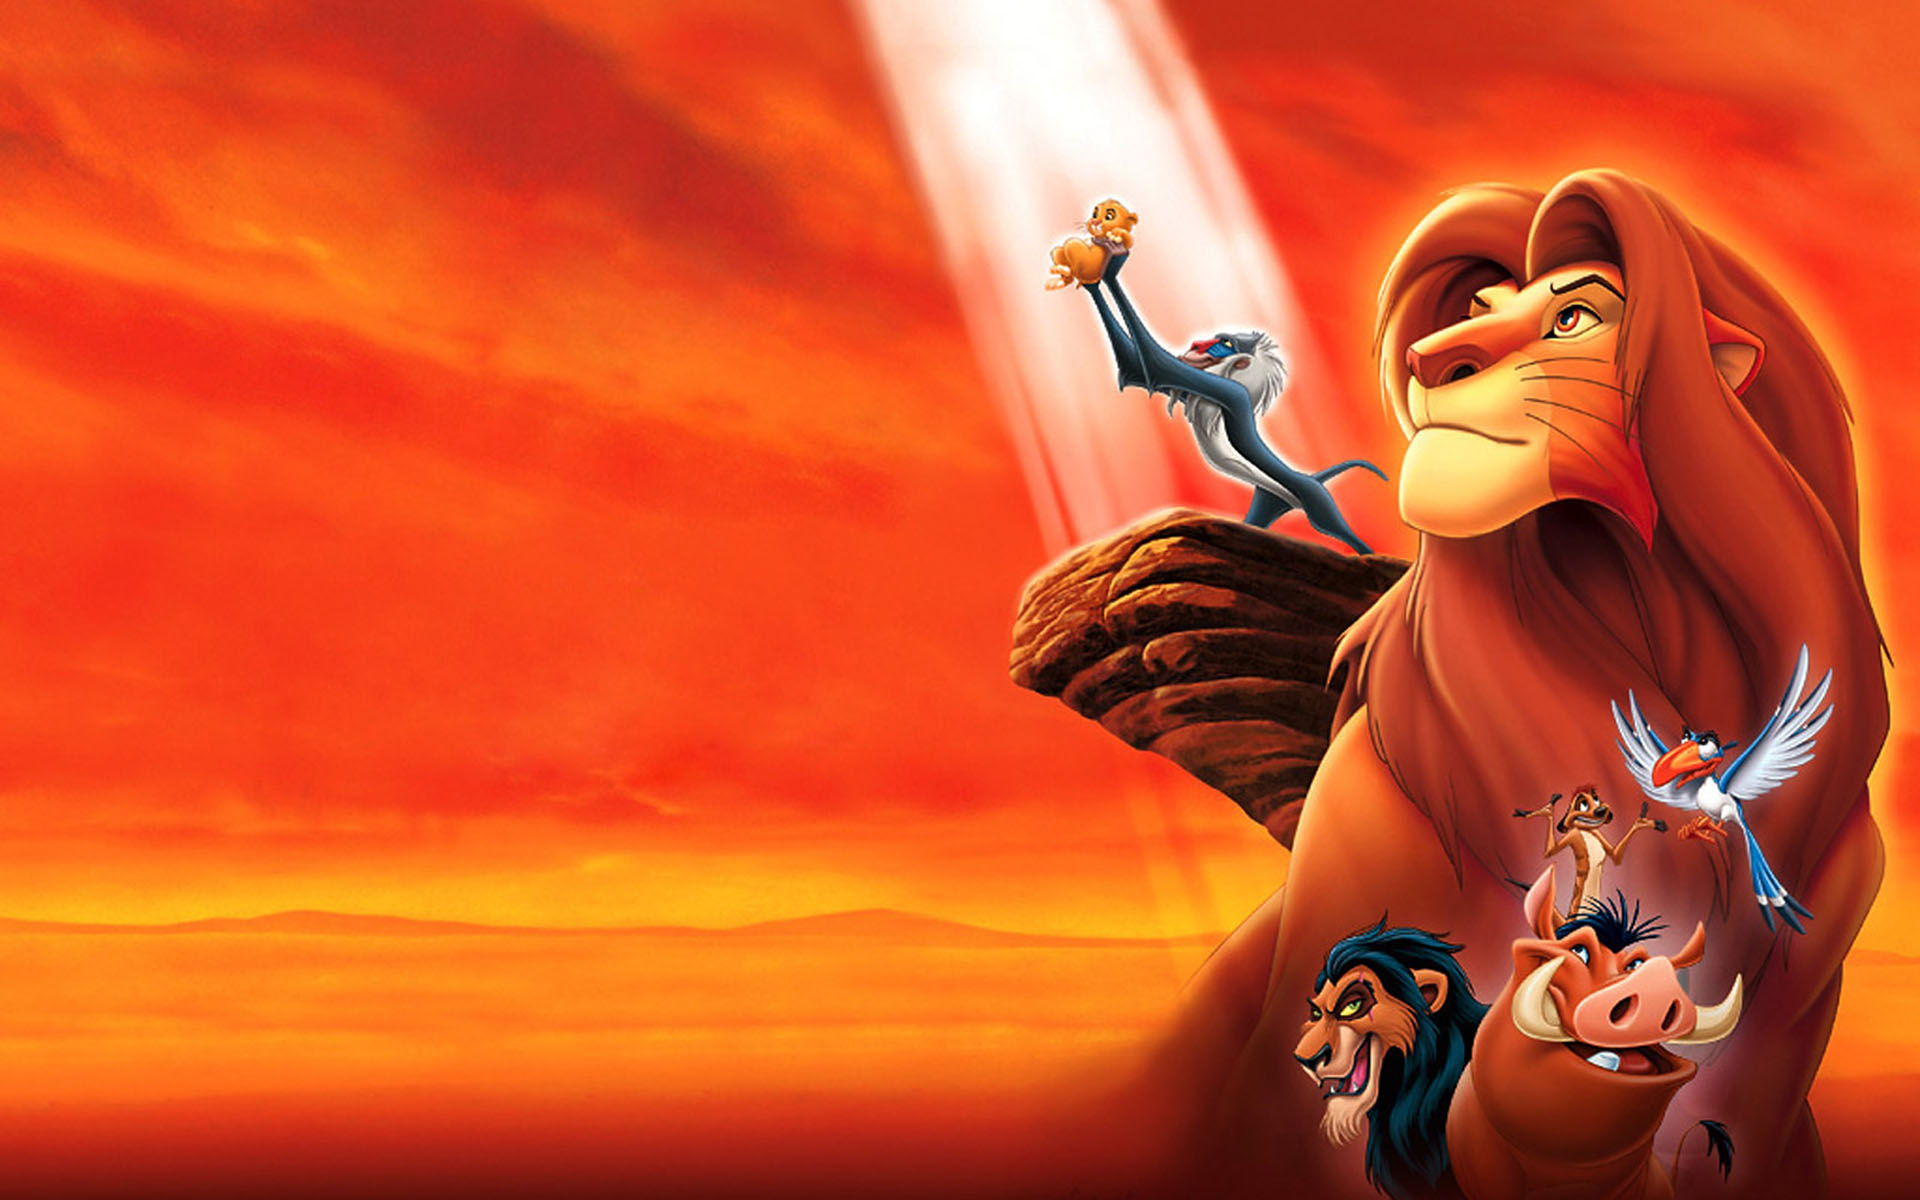 The Lion King Wallpapers High Quality | Download Free